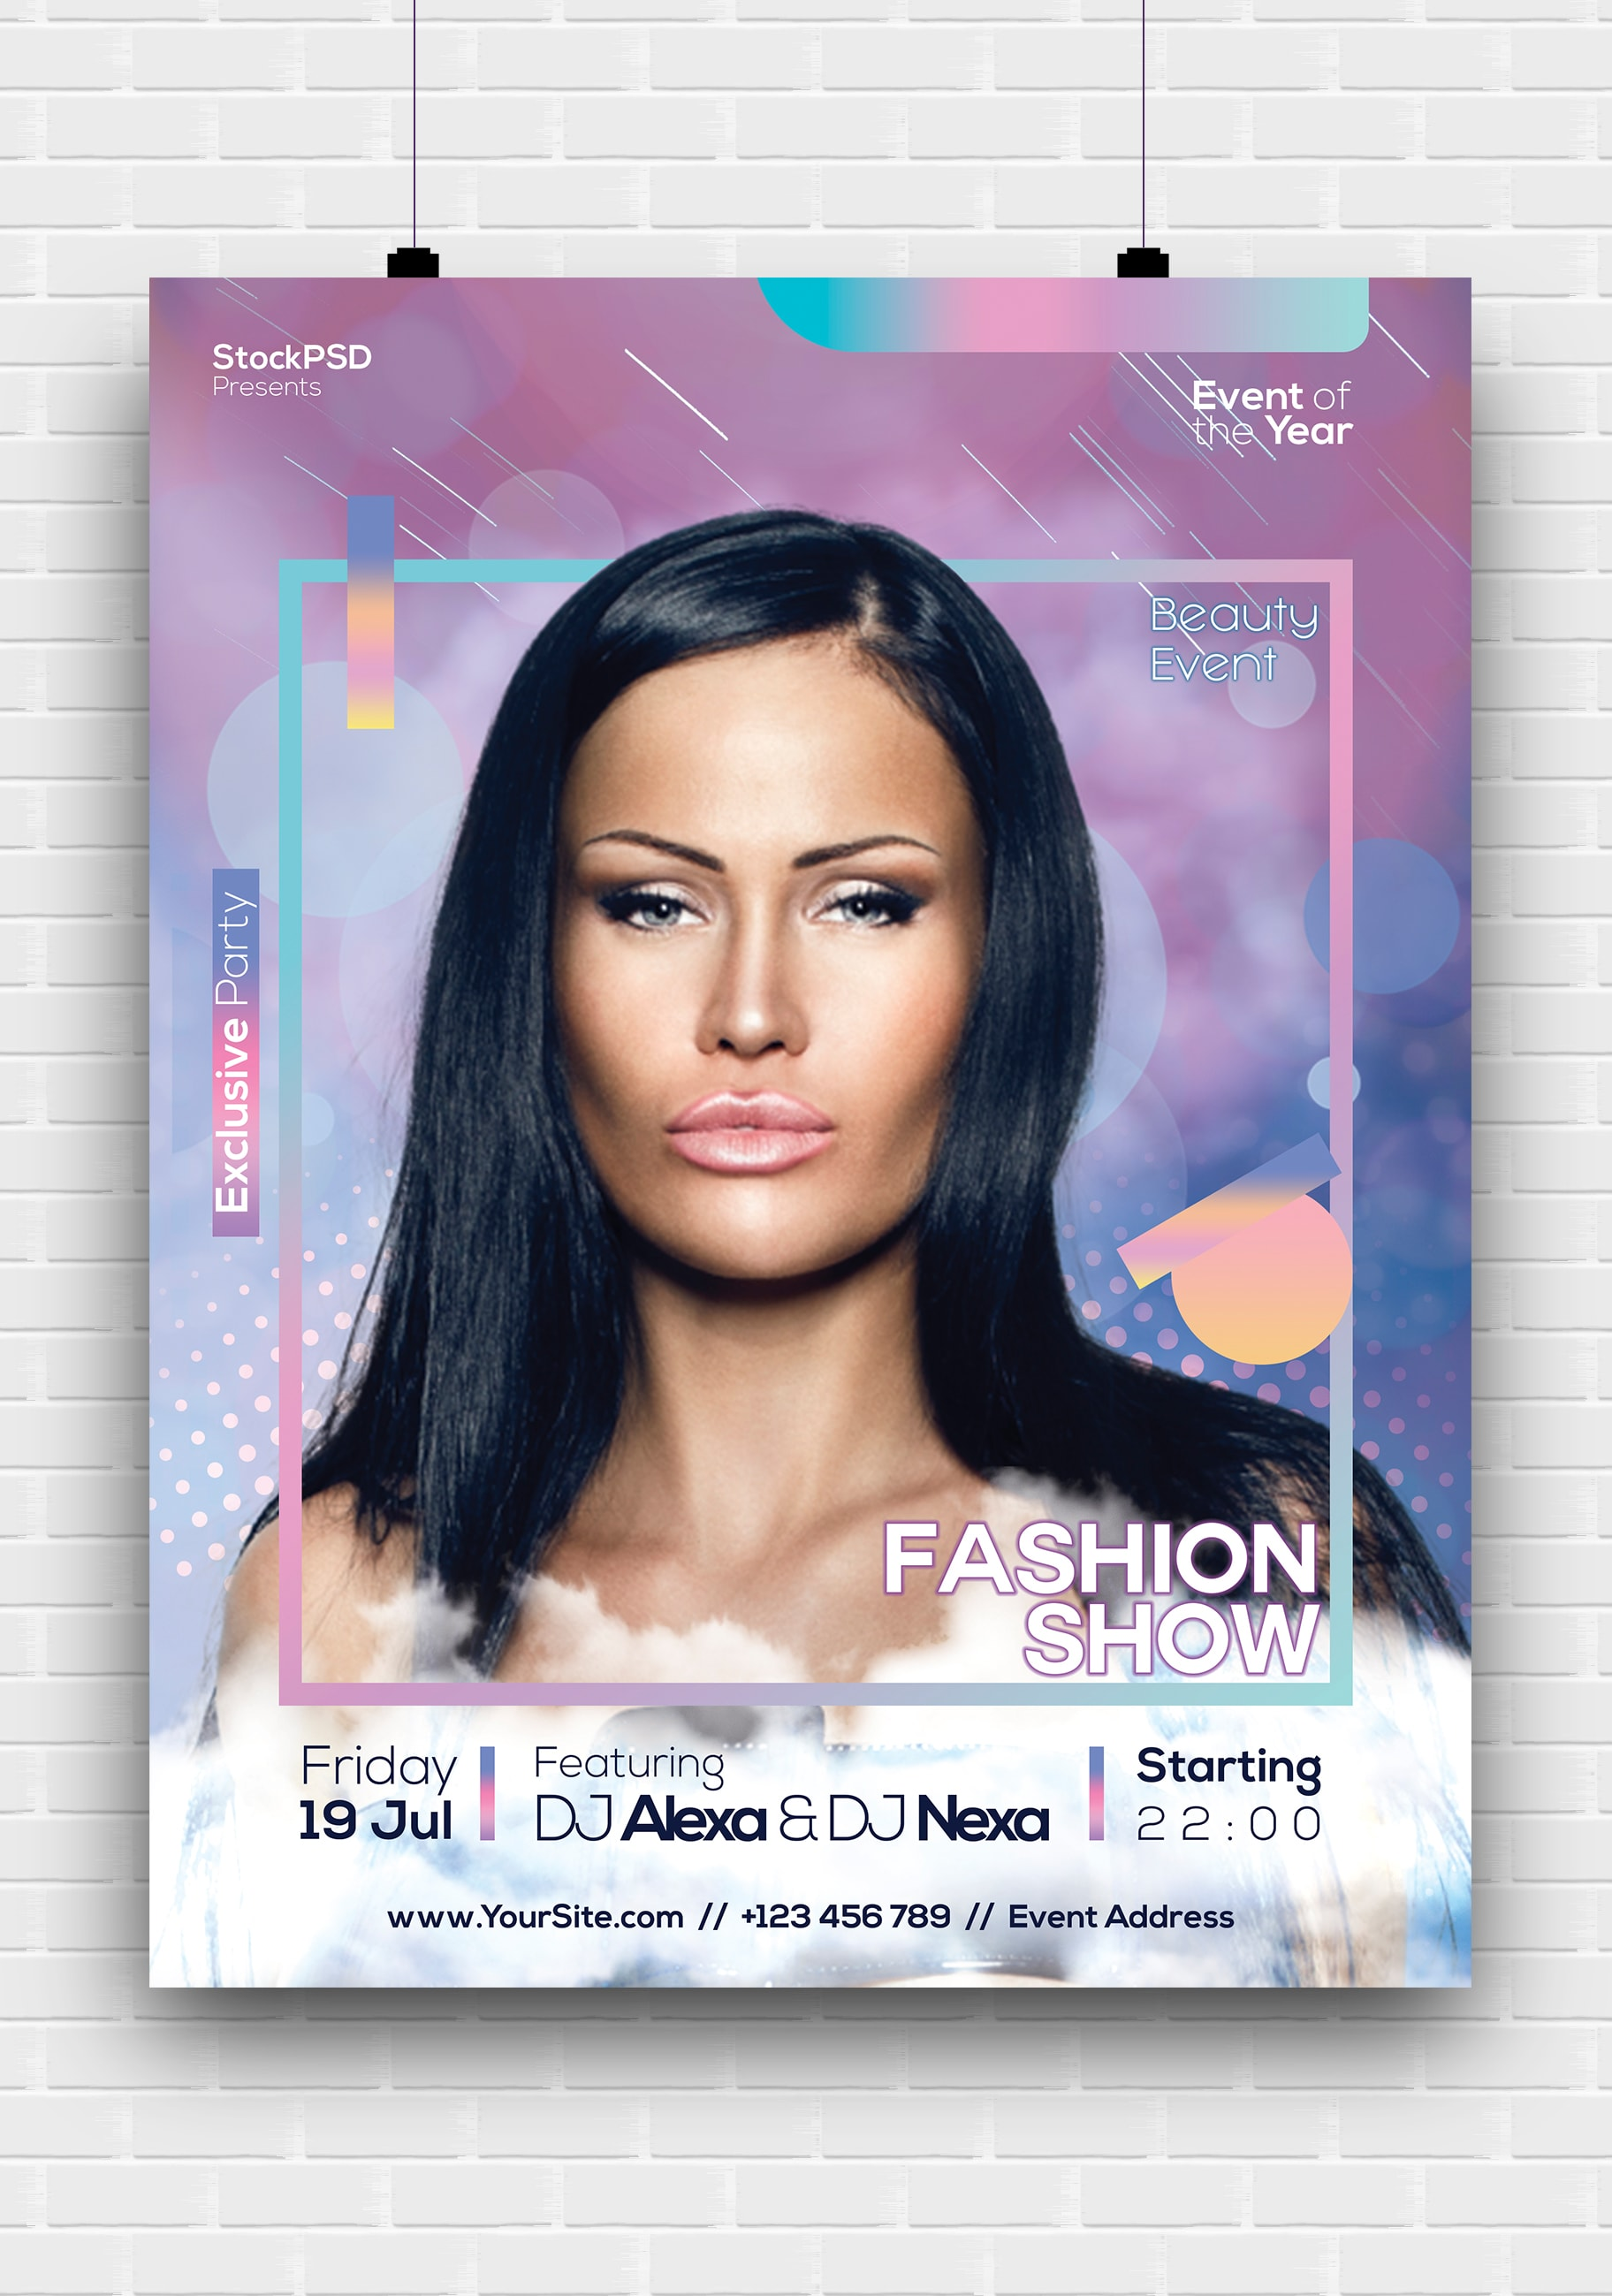 Fashion Show Event Free PSD Poster Template